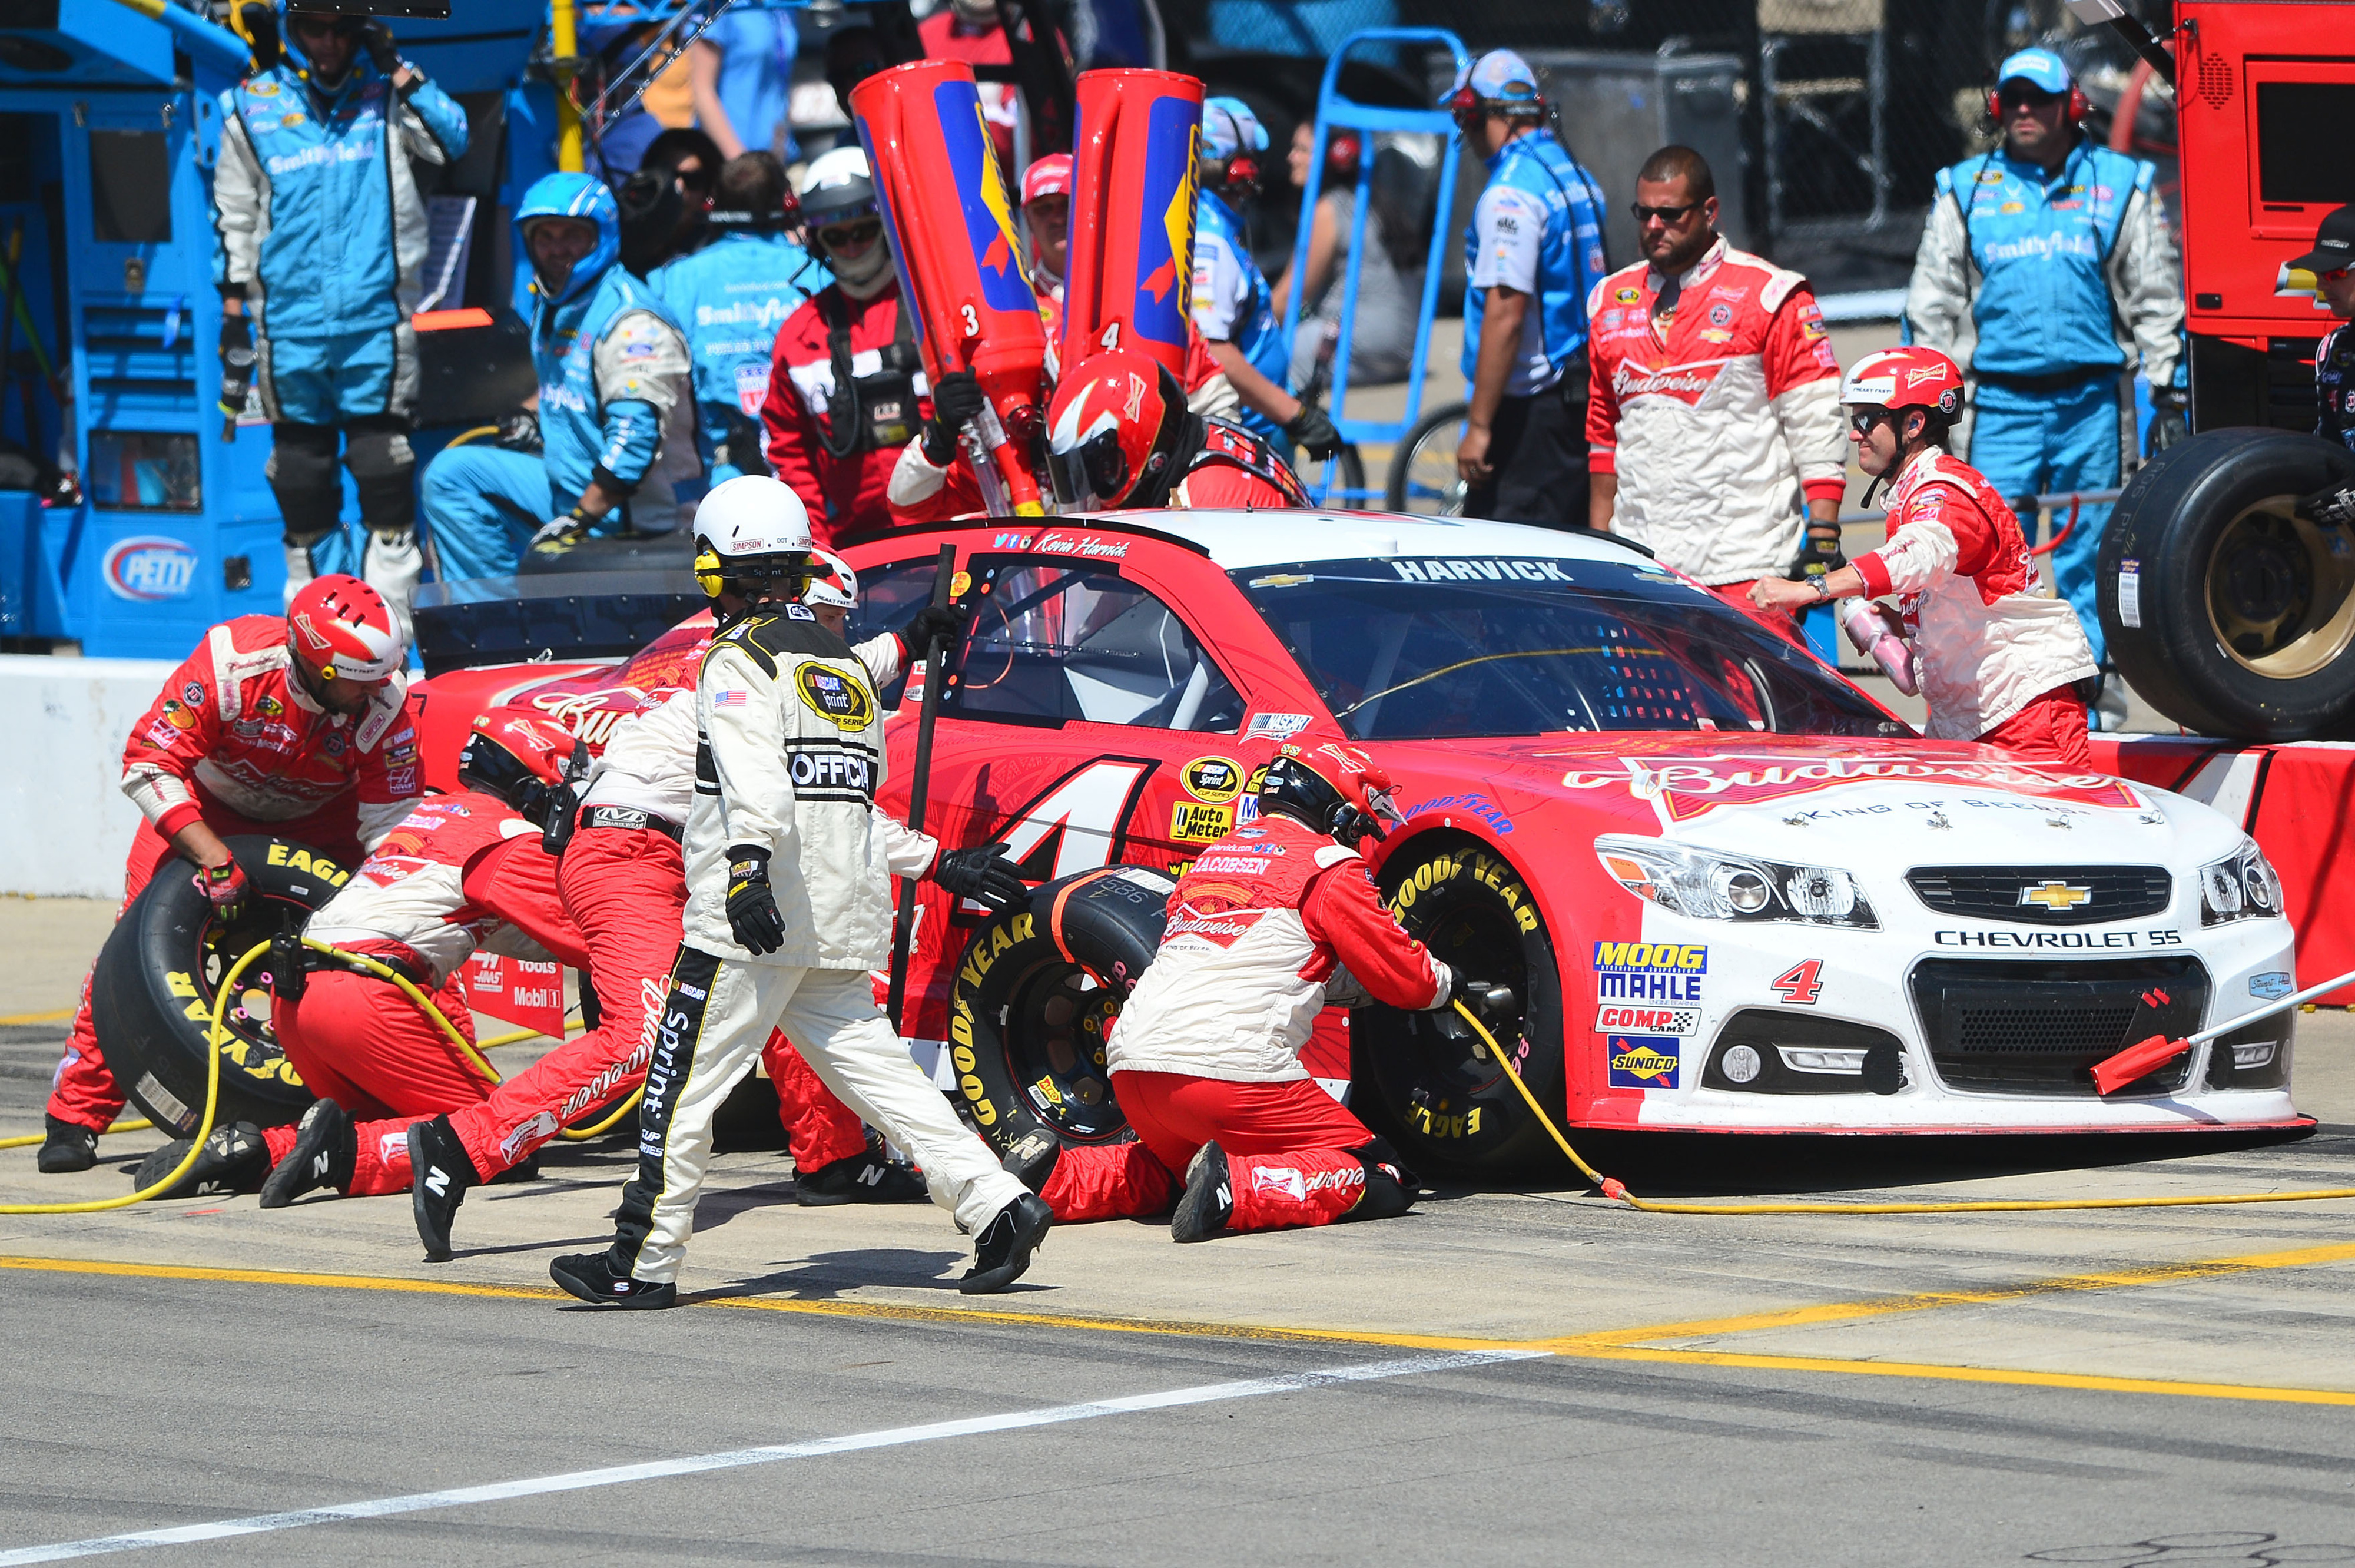 Quicken Loans 400: Kevin Harvick finishes 2nd, questions team strategy